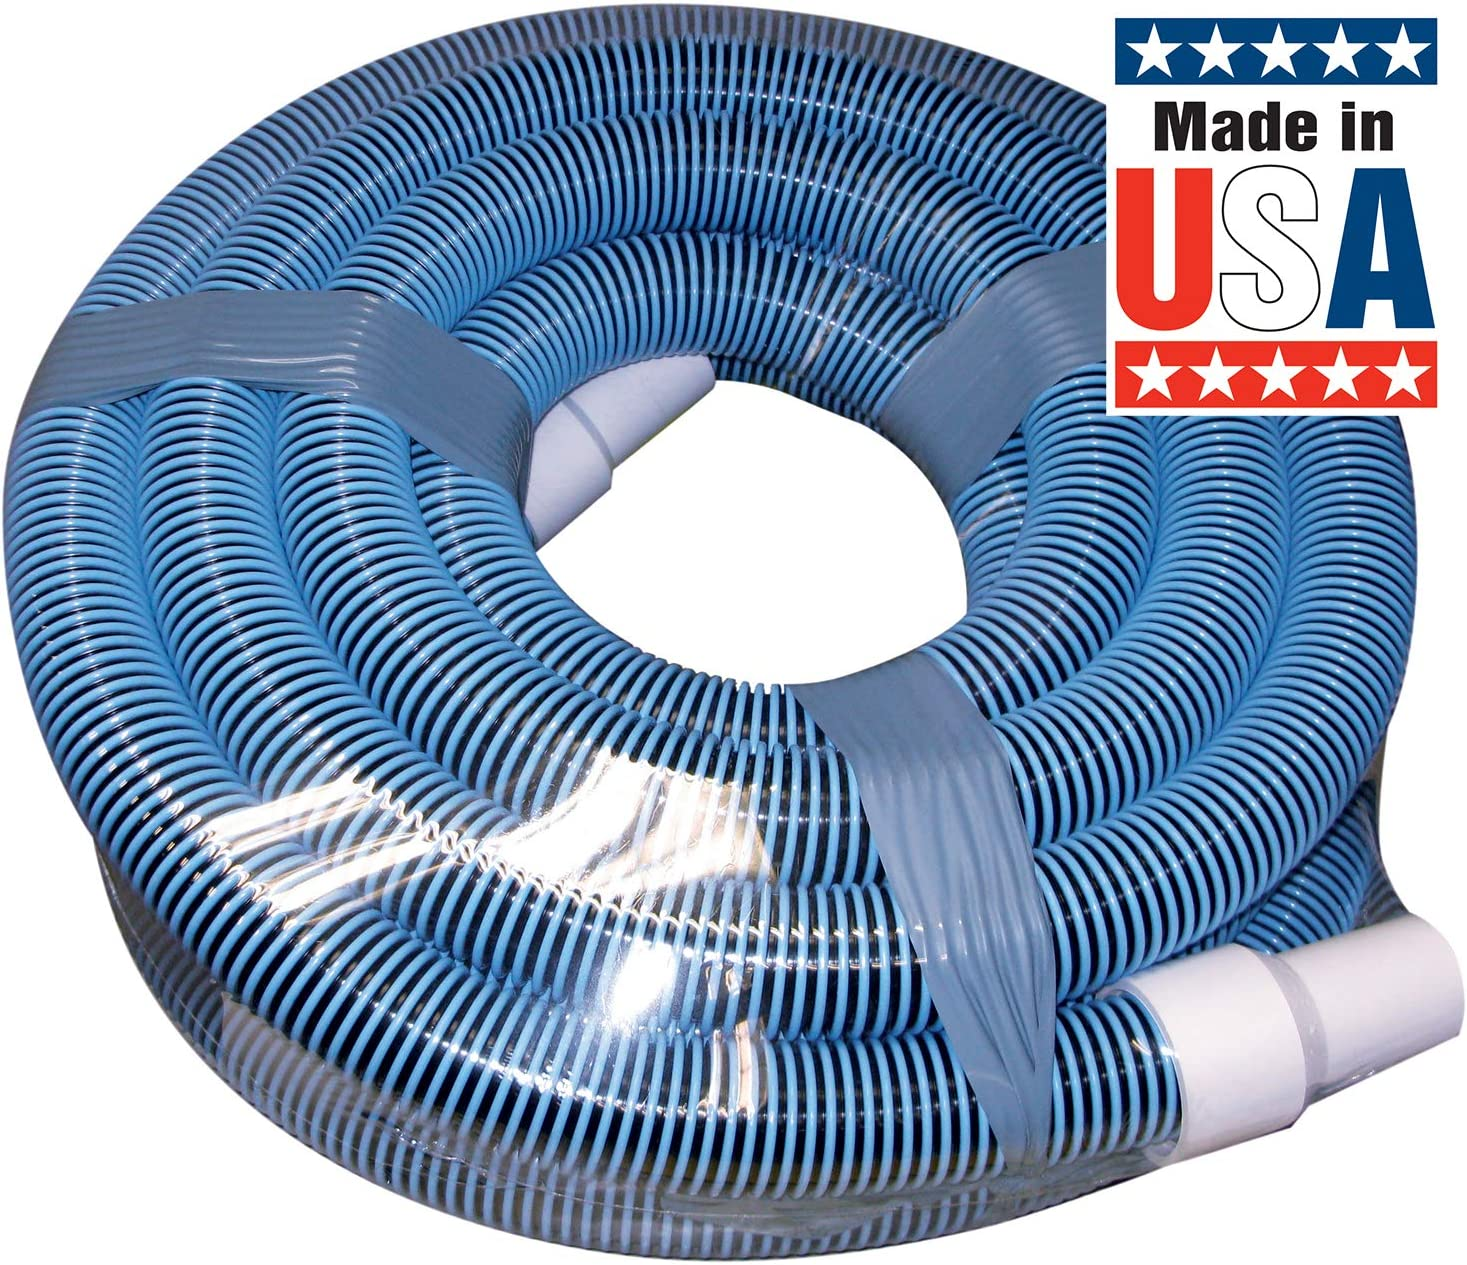 Poolmaster 33430 Heavy Duty In-Ground Pool Vacuum Hose With Swivel Cuff, 1-1/2-Inch by 30-Feet, Neutral : Swimming Pool Hoses : Garden & Outdoor